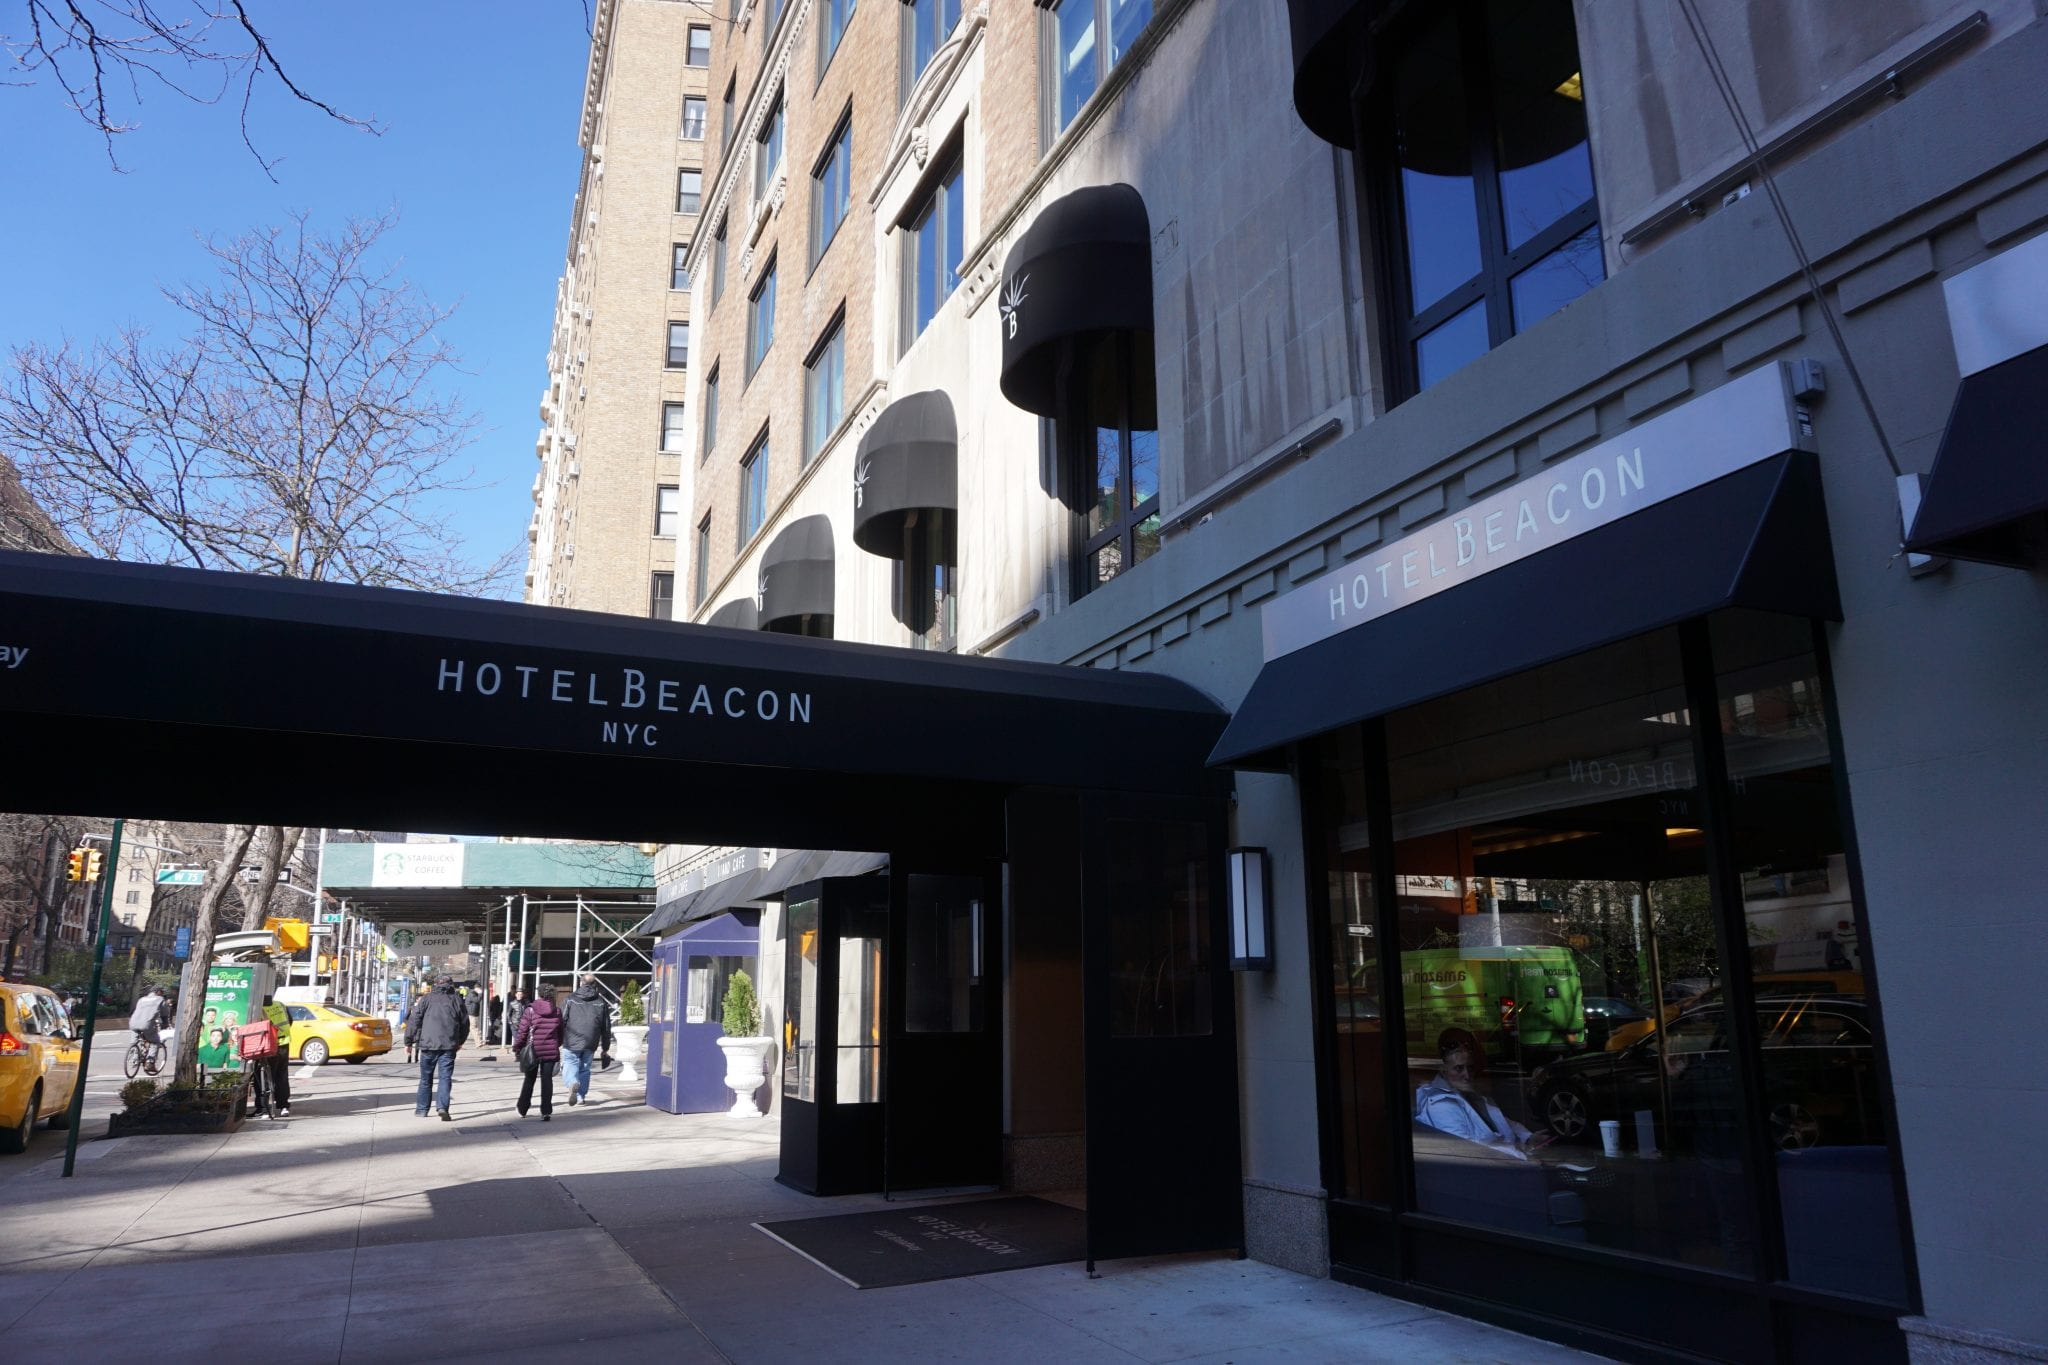 Hotel Beacon in NYC |Global Munchkins